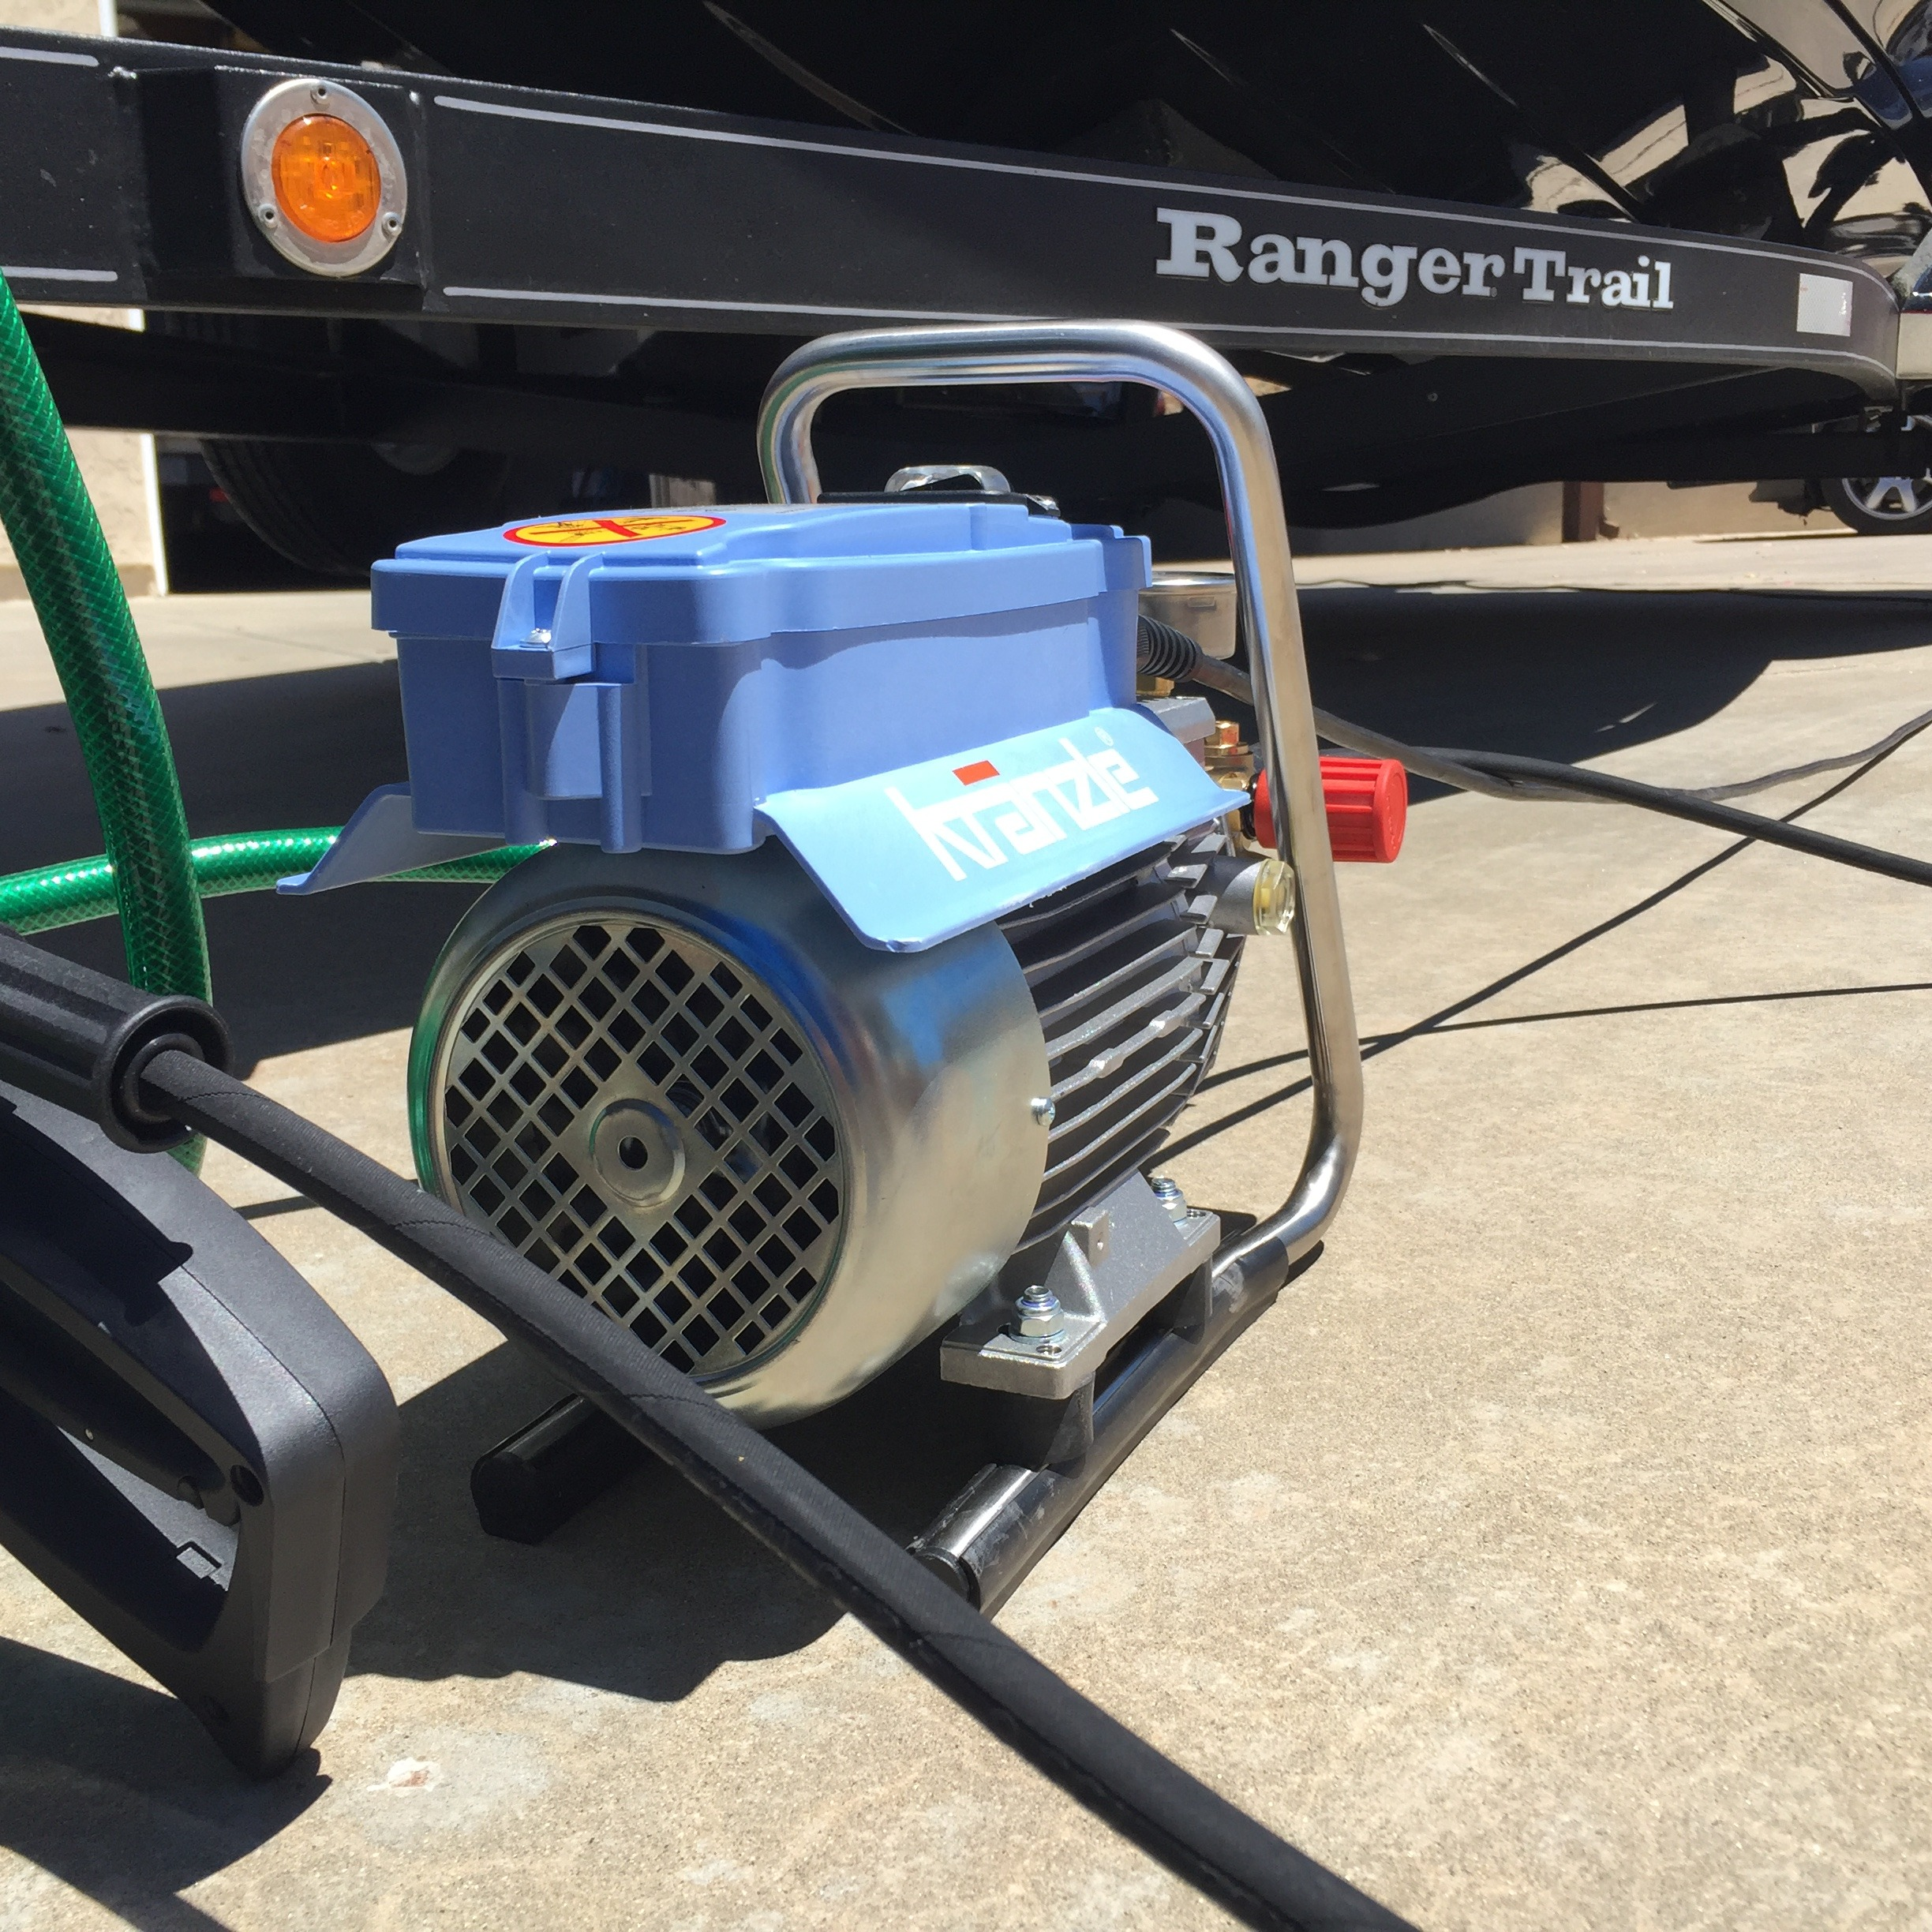 Best Spotless Car Wash System